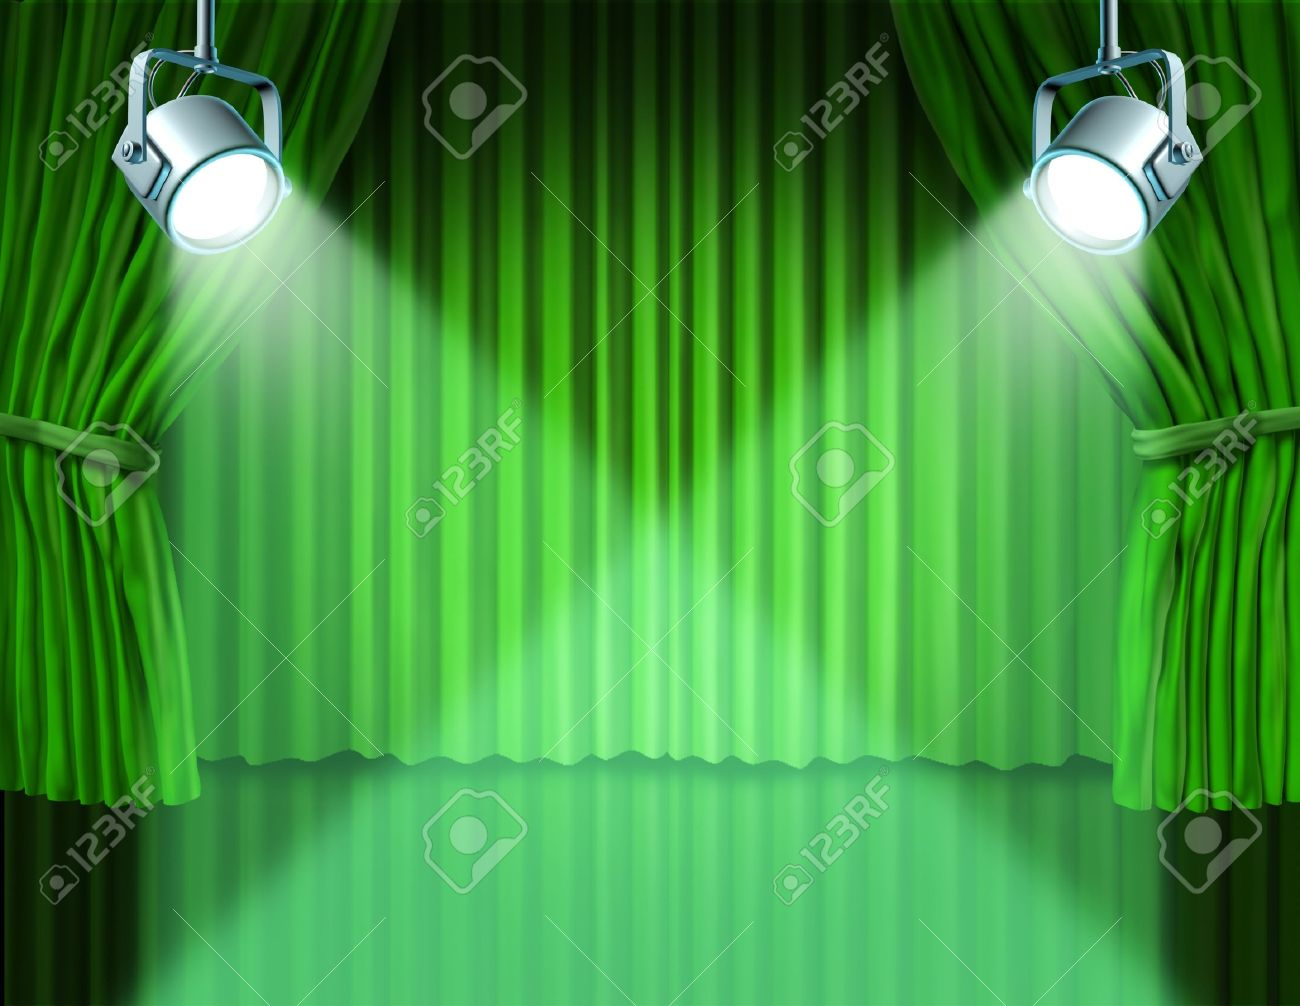 Green stage curtains - Stage Curtain Theater Stage With Spotlights On Green Velvet Cinema Curtain And Drapes Representing The